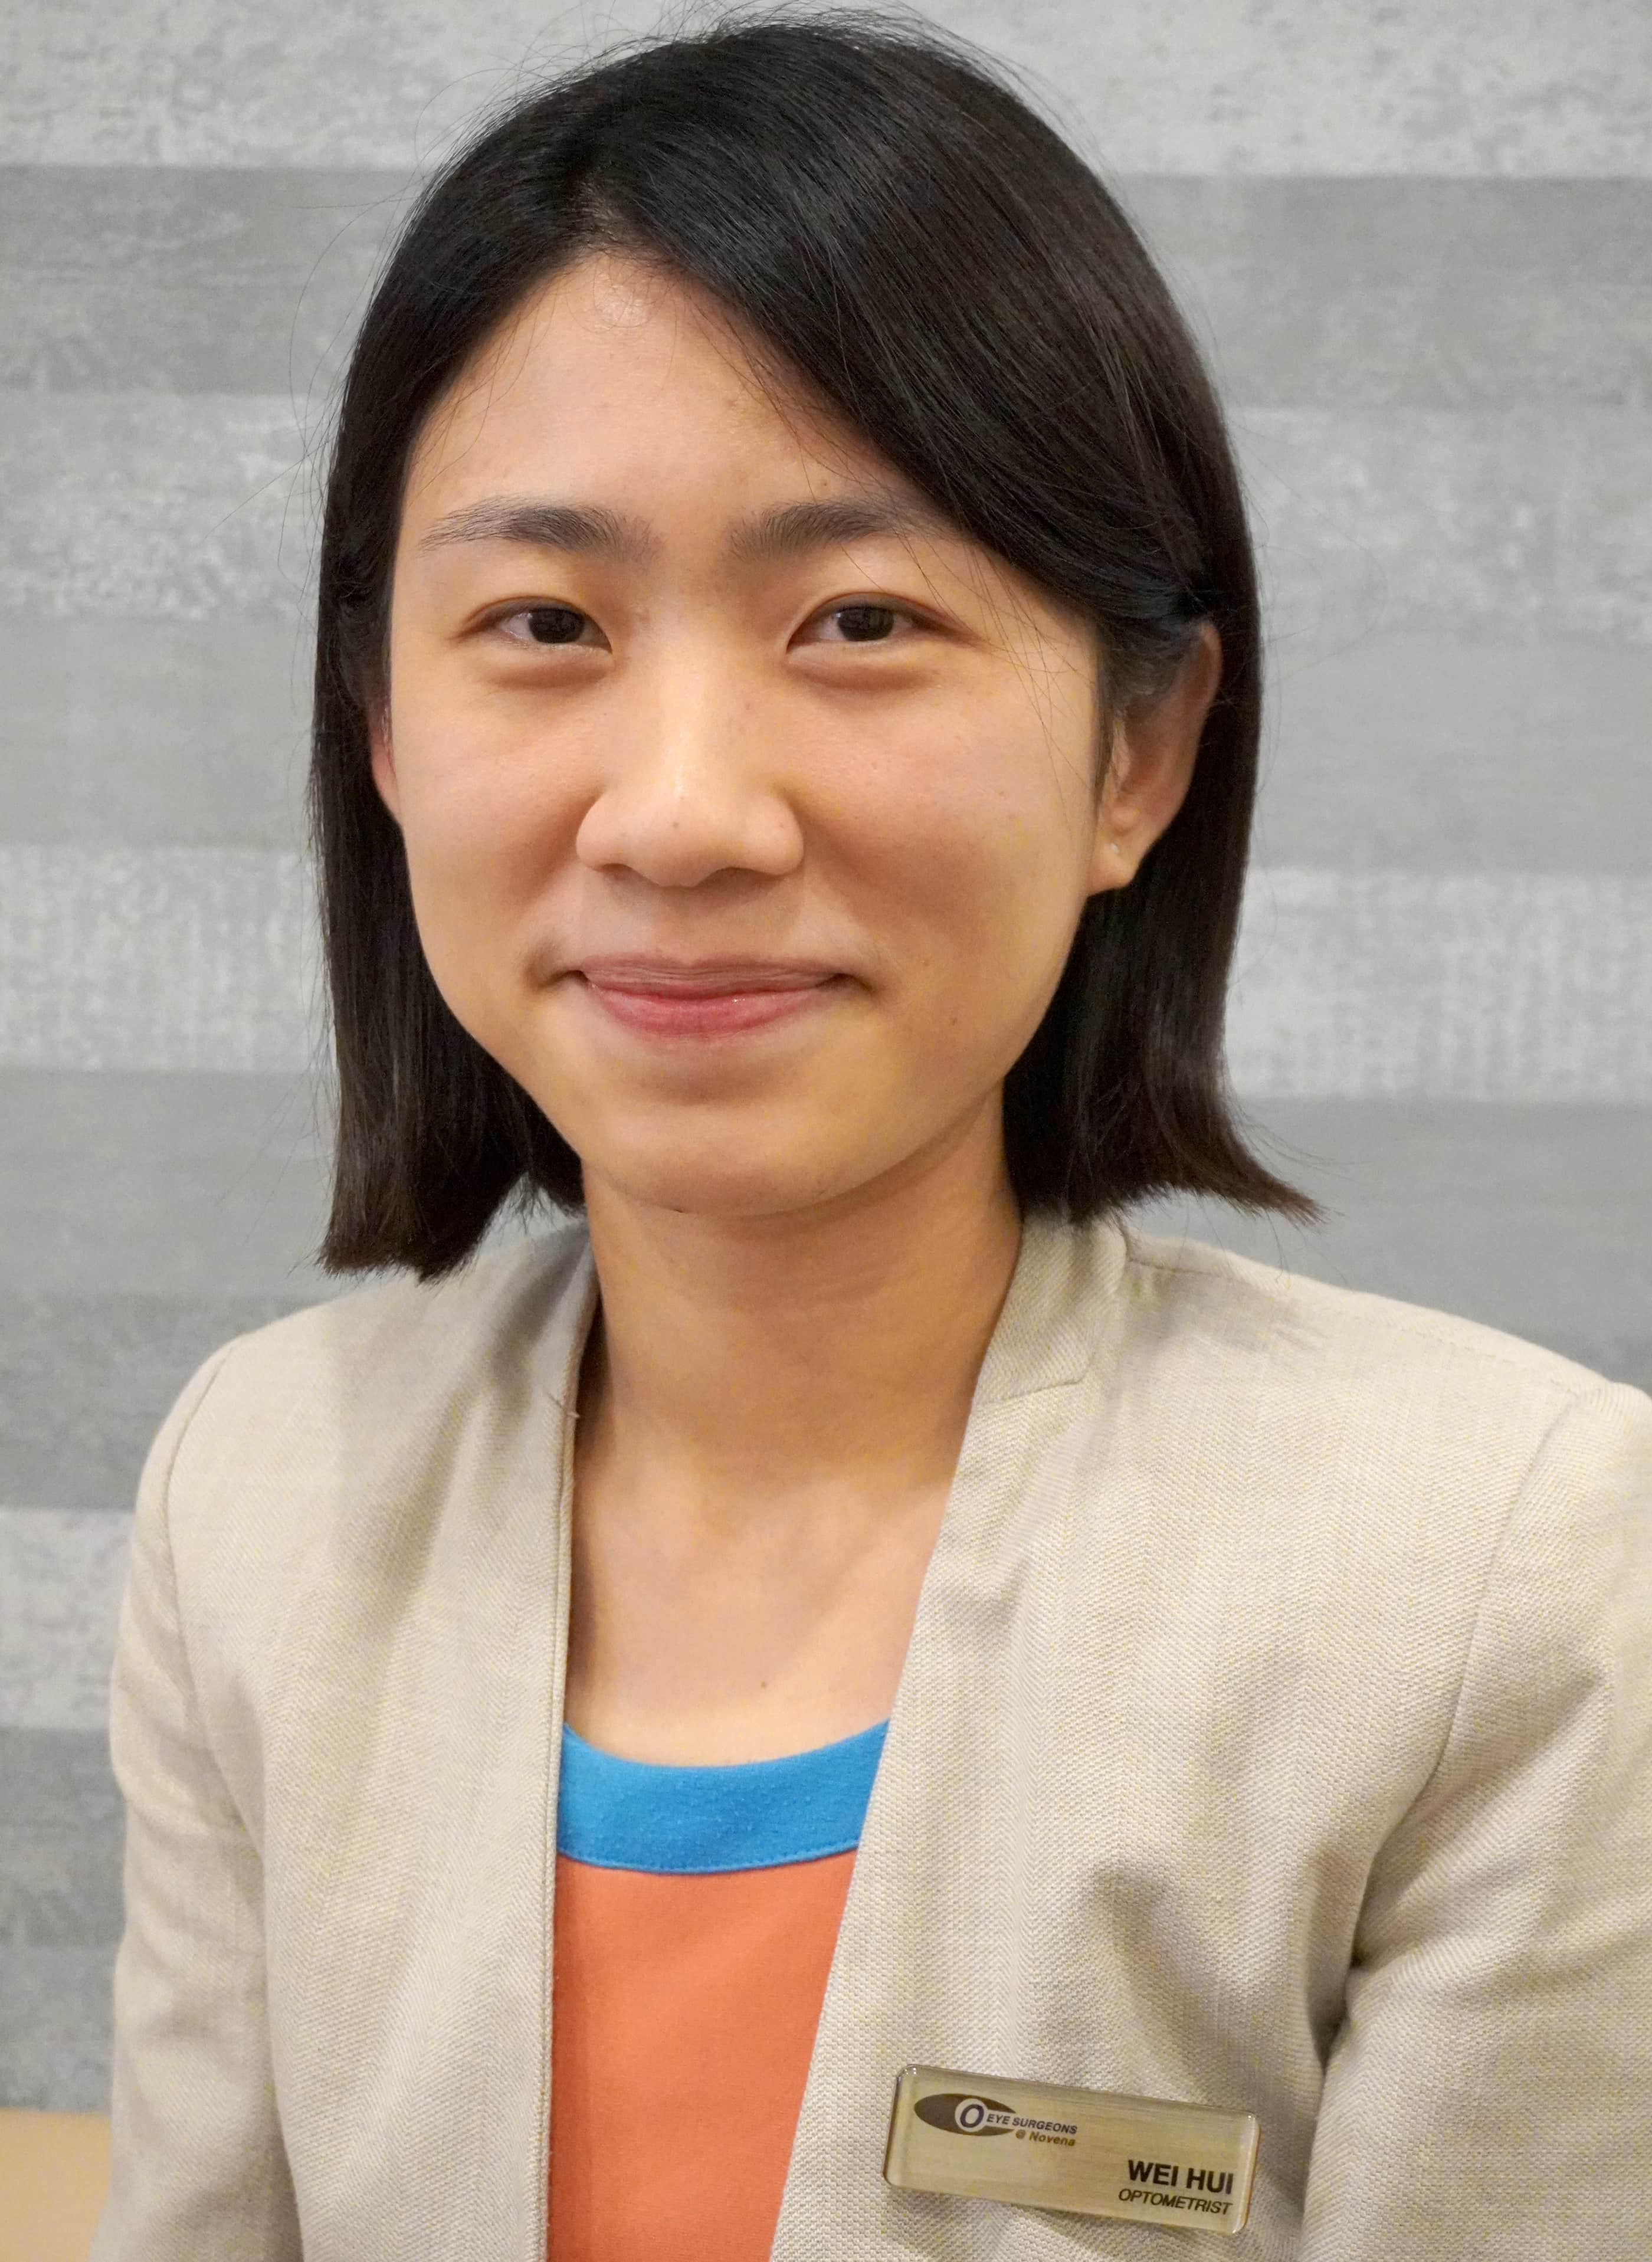 Wei Hui Optometrist at Ophthalmic Consultants